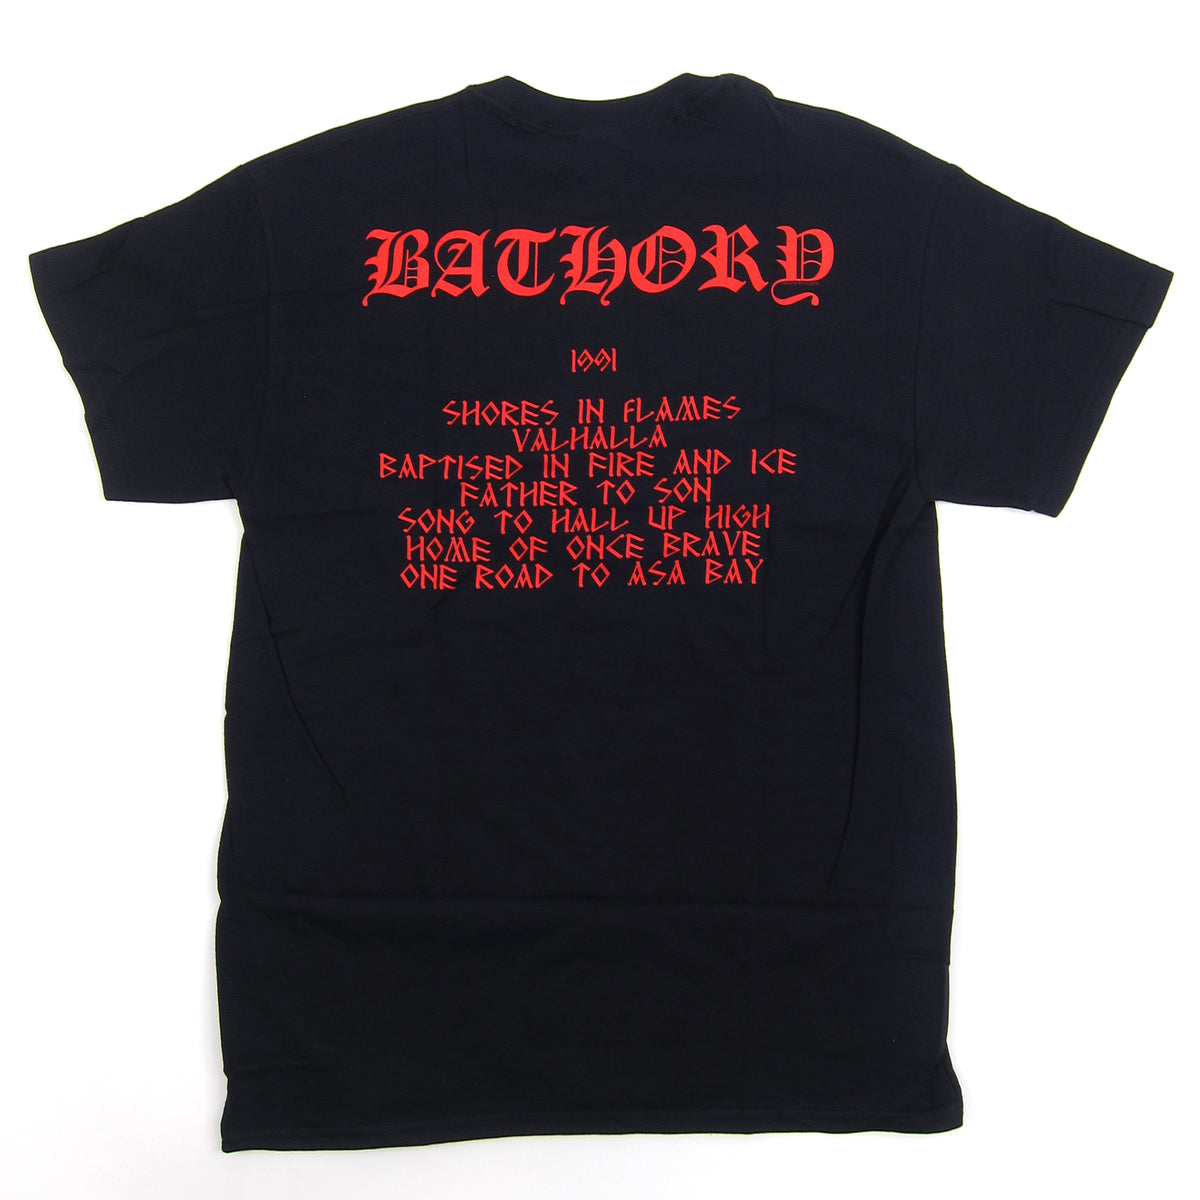 Bathory: Hammerheart Shirt - Black